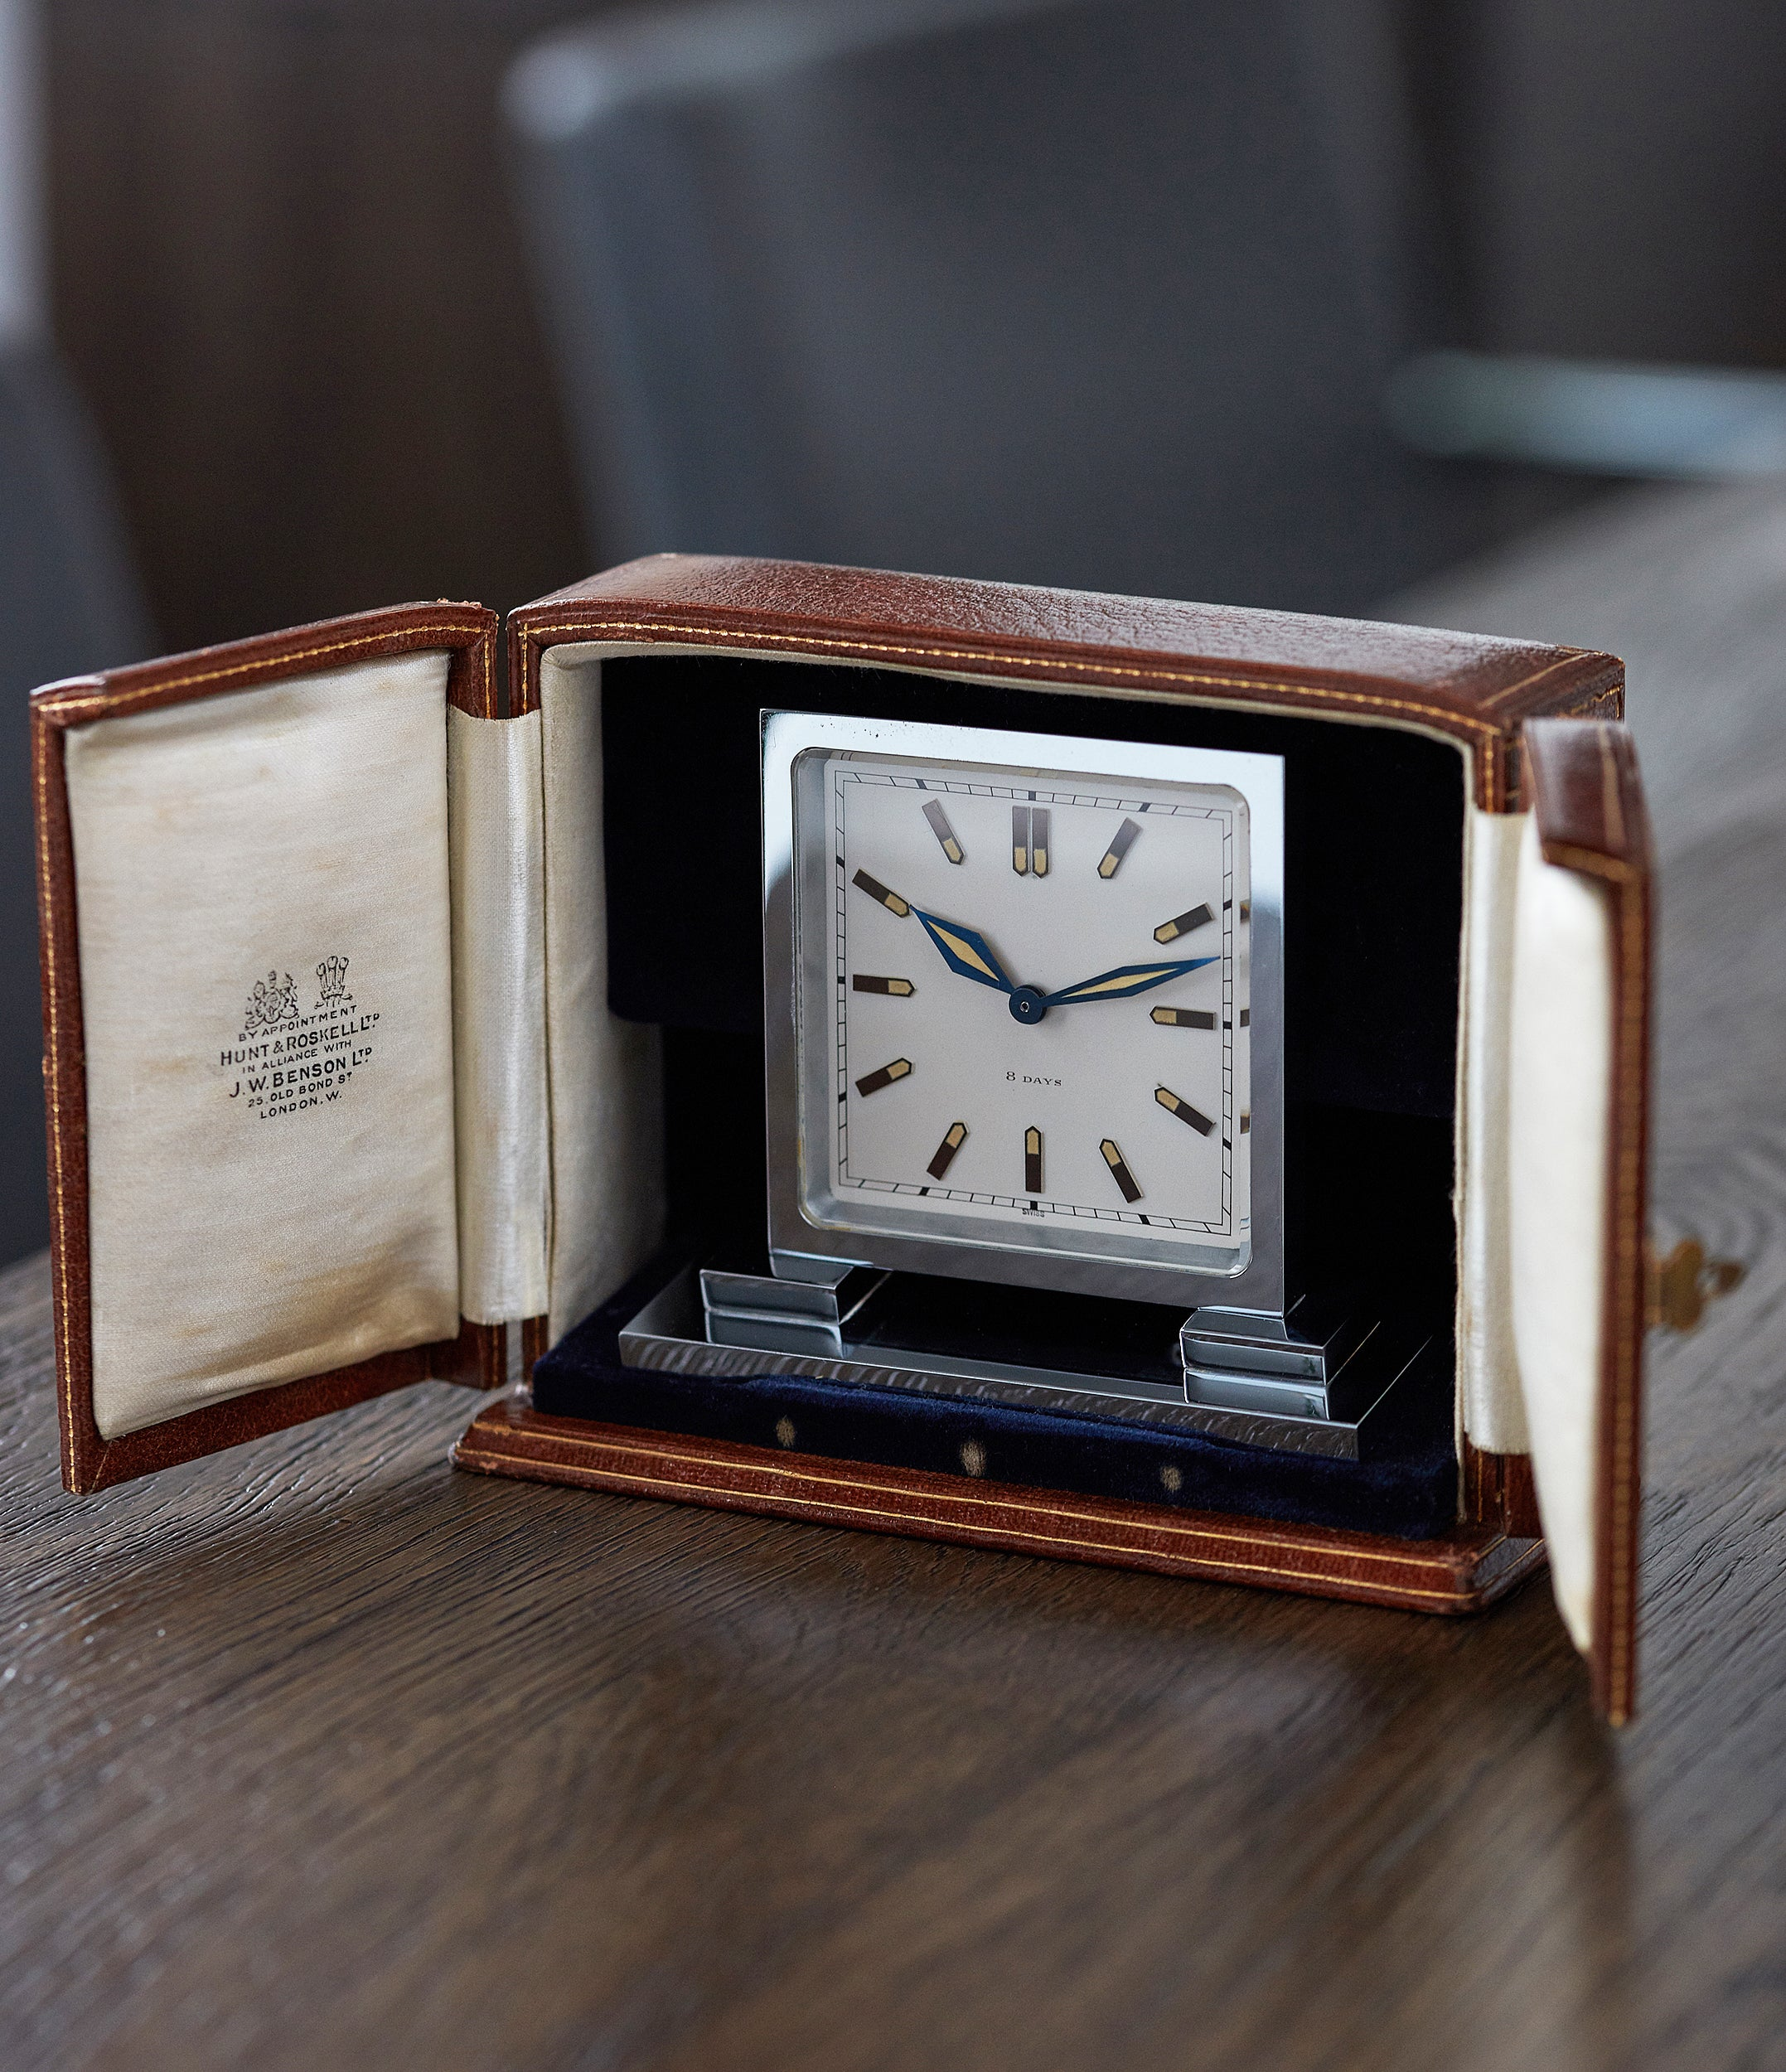 selling Hunt & Roskell Benson art deco time-only 1930s table clock  original box rare find collectable object A Collected Man